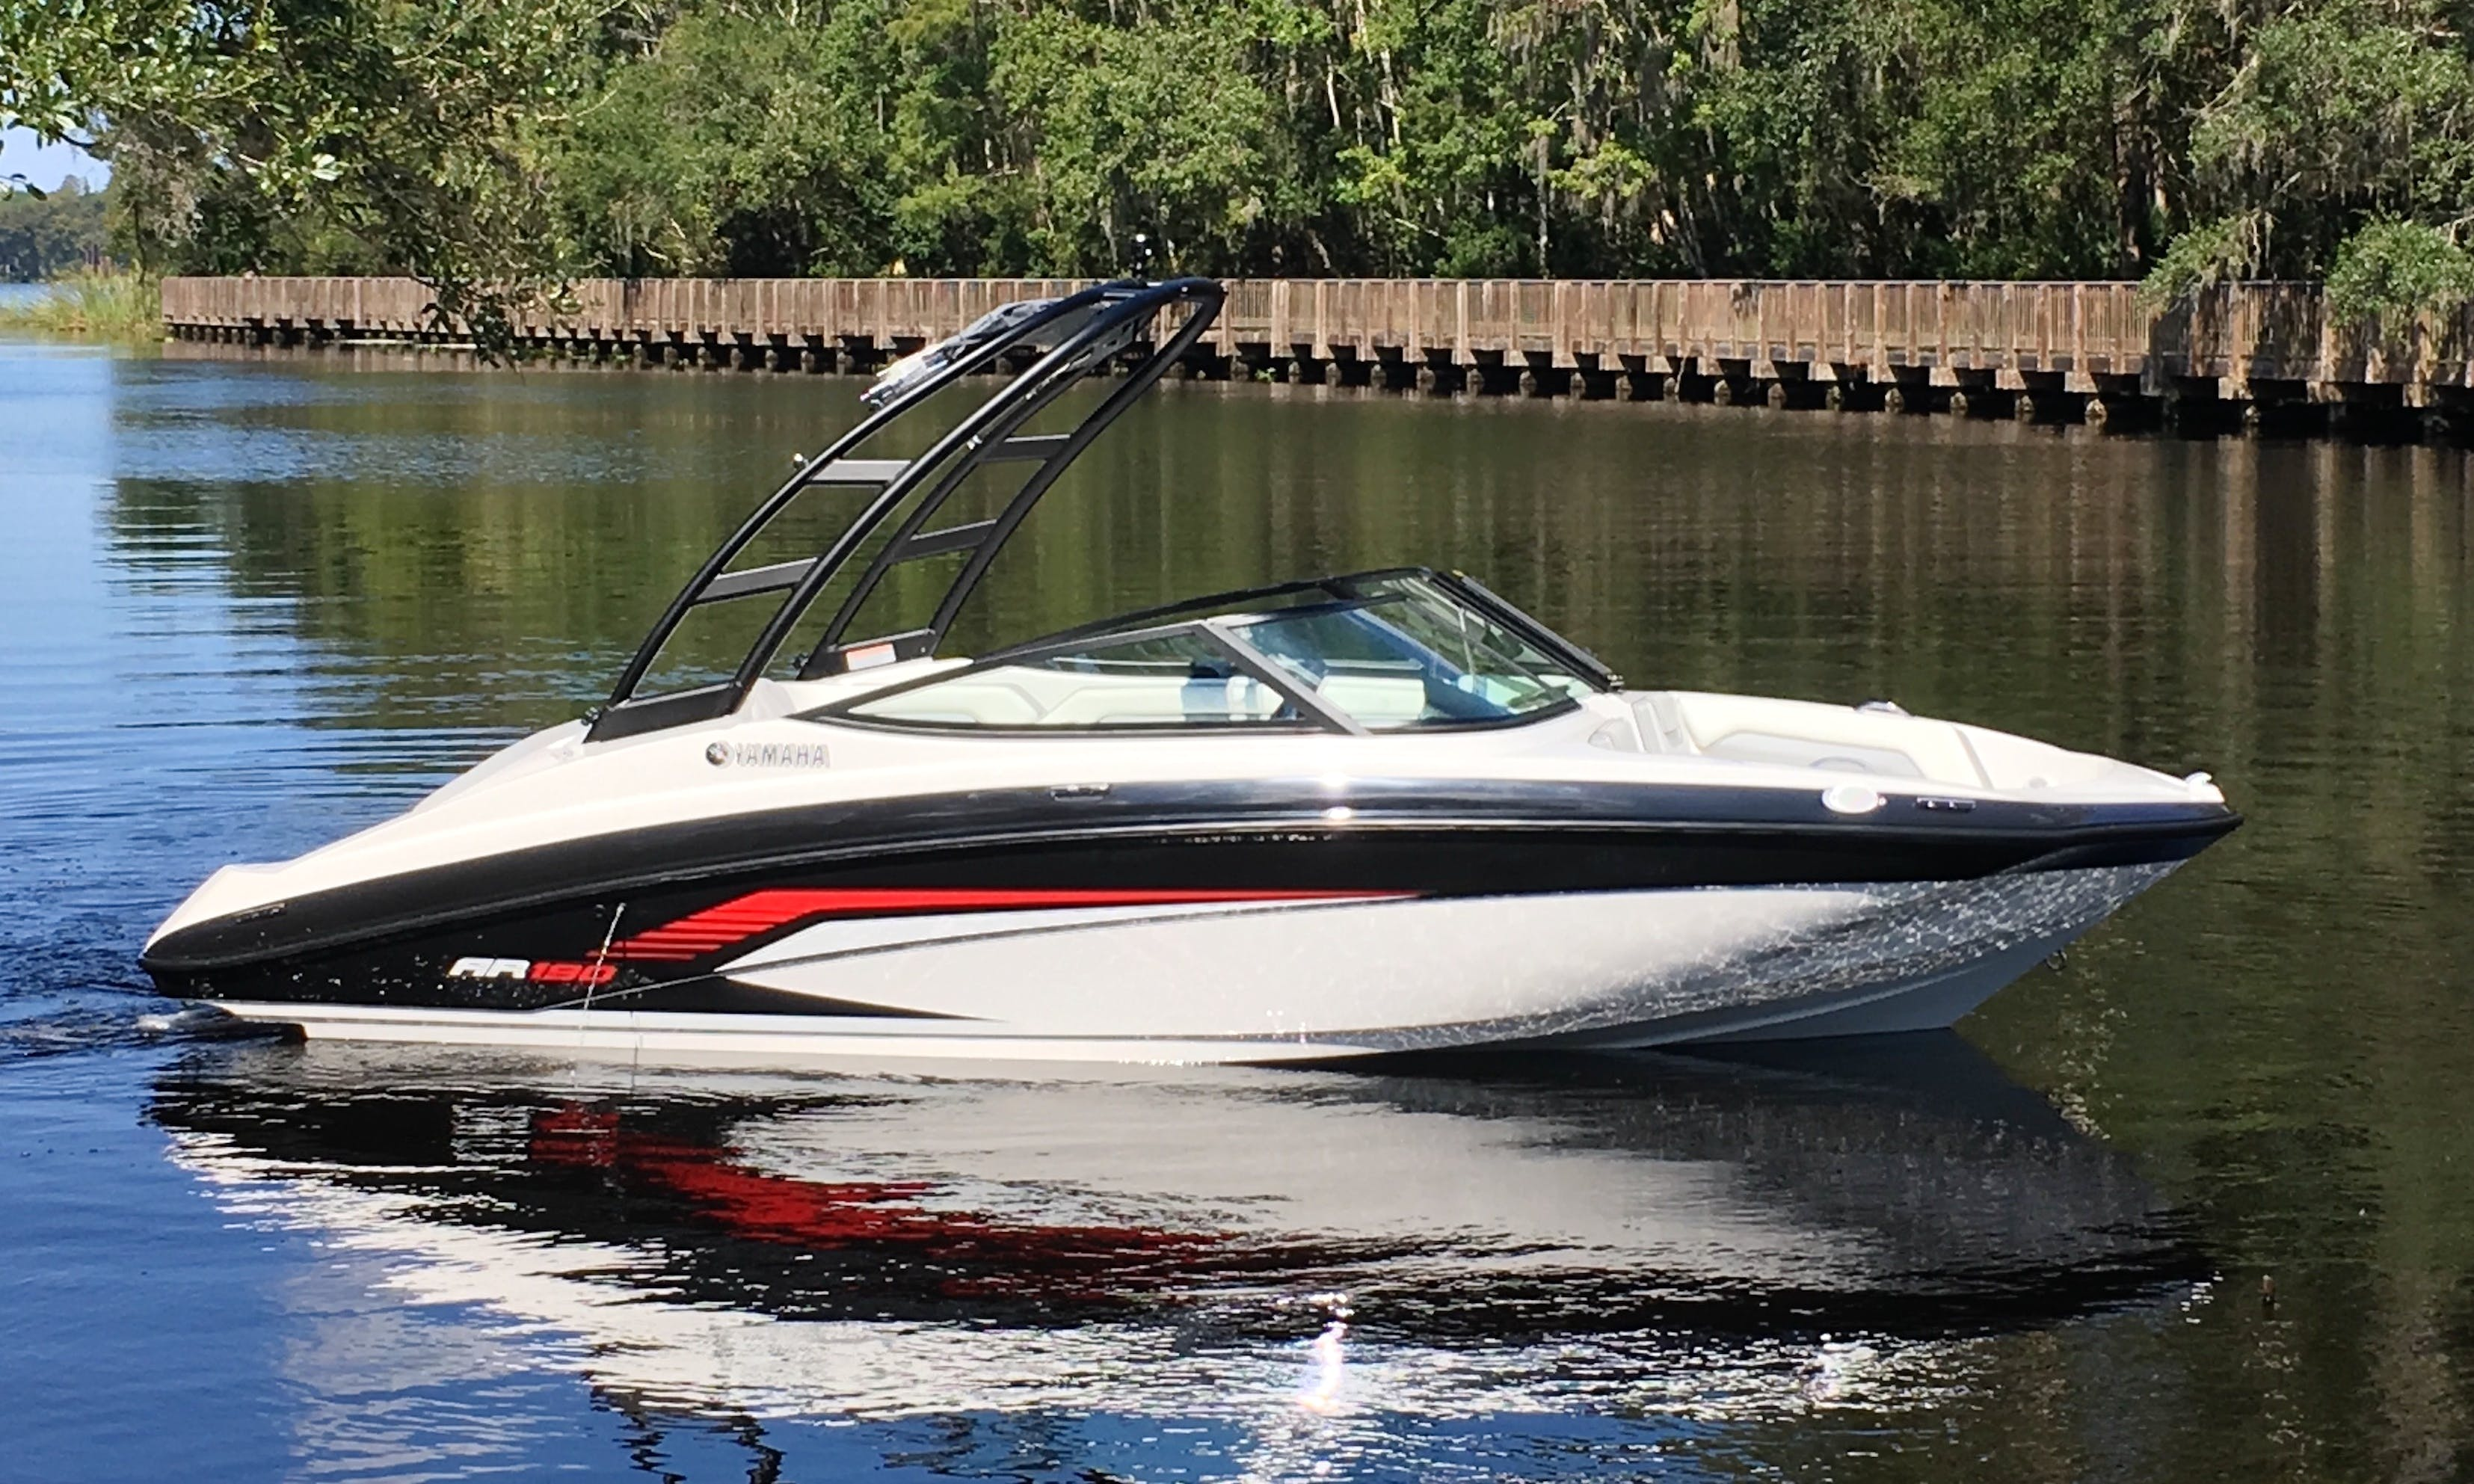 New 2018 Yamaha 19ft Jetboat! Spring Special!